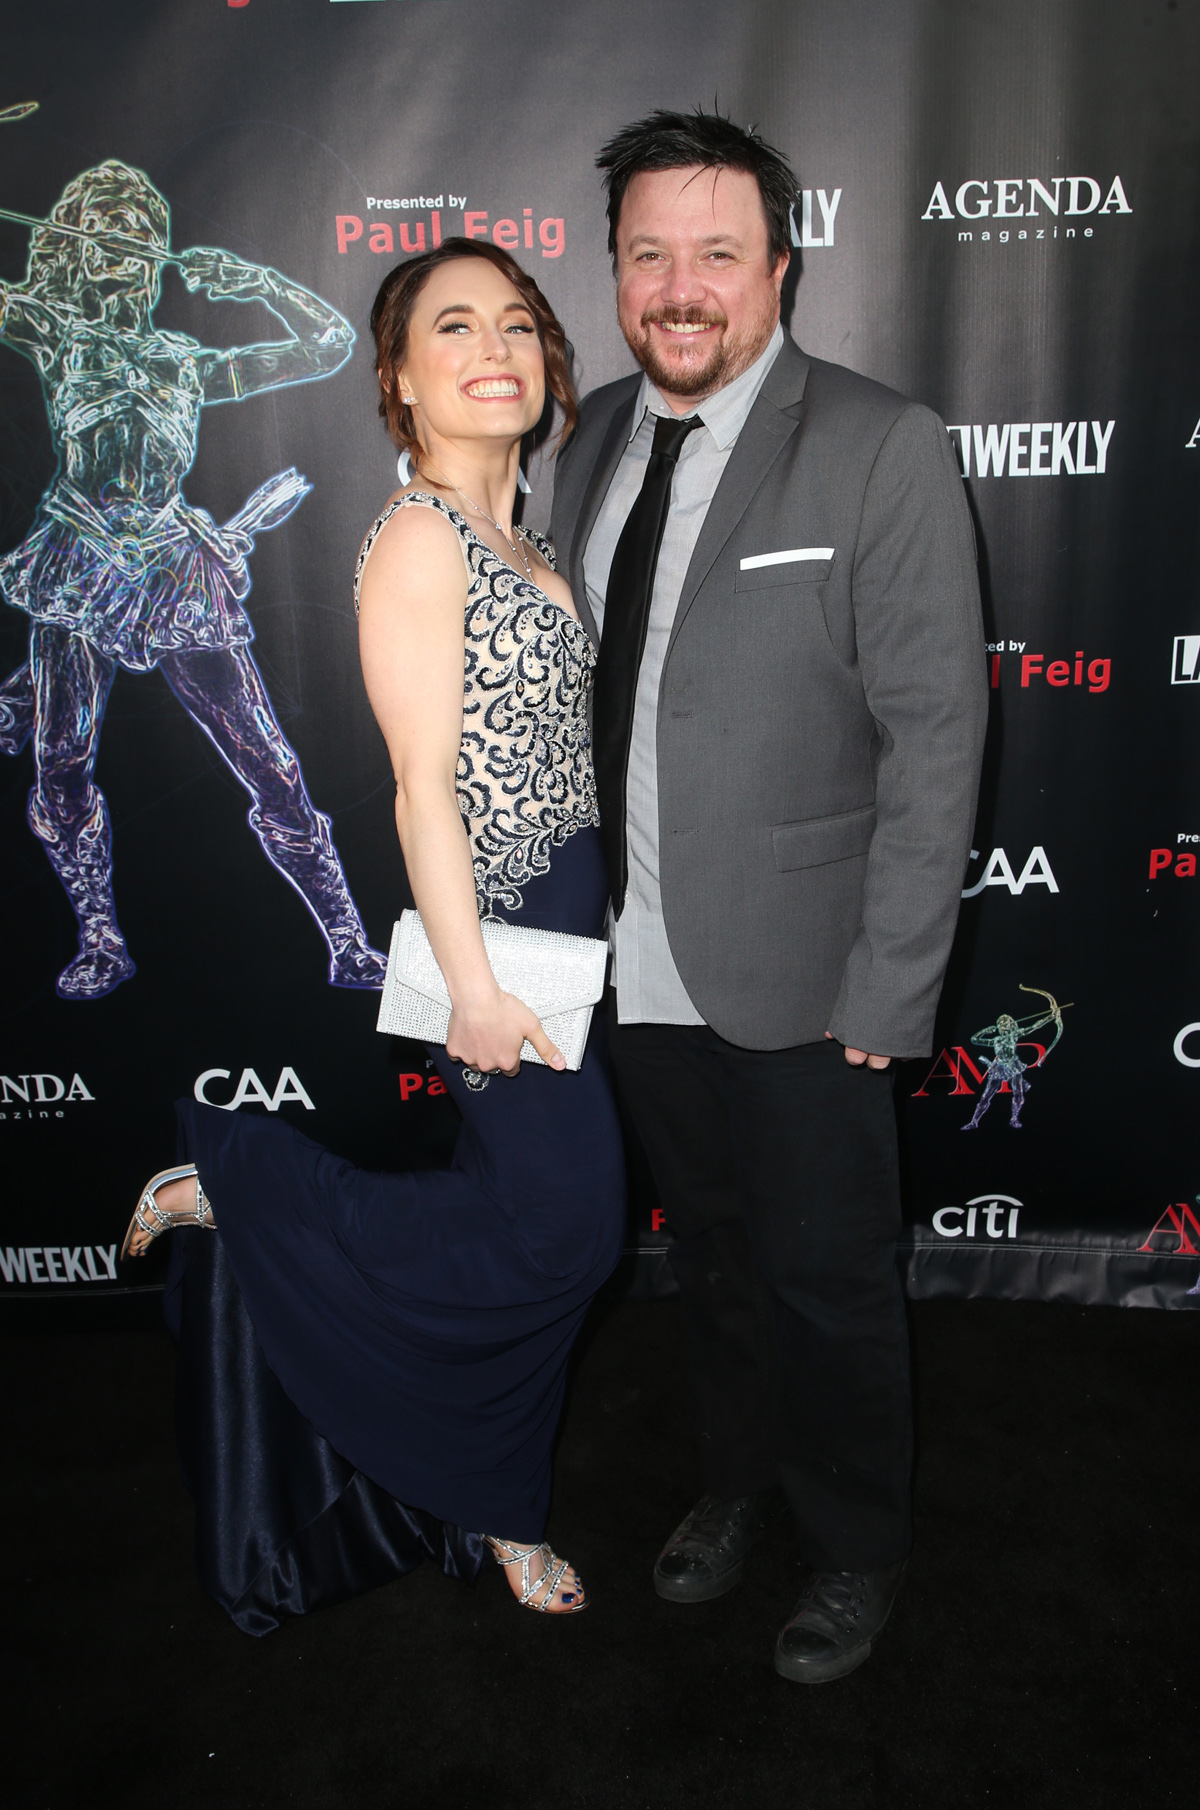 BEVERLY HILLS, CA - APRIL 26: Cassandra Ebner, Trevor Addie, at the 2018 Artemis Awards Gala at the Ahrya Fine Arts Theater in Beverly Hills, California on April 26, 2018. Credit: Faye Sadou/MediaPunch